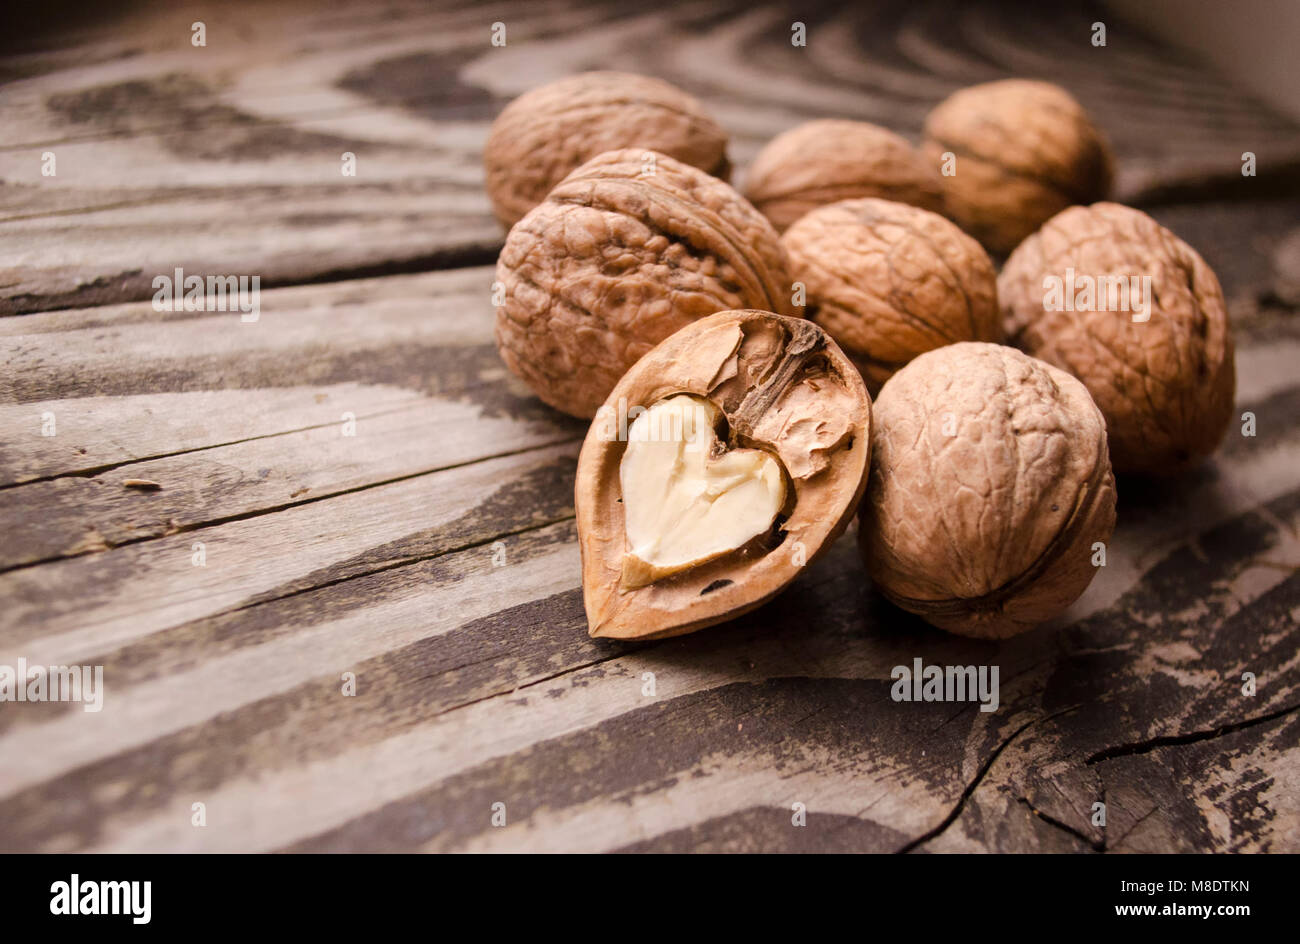 Walnuts on a grey textured wooden table. Assortment of nuts isolated on rustic old wooden background and splintered - Stock Image